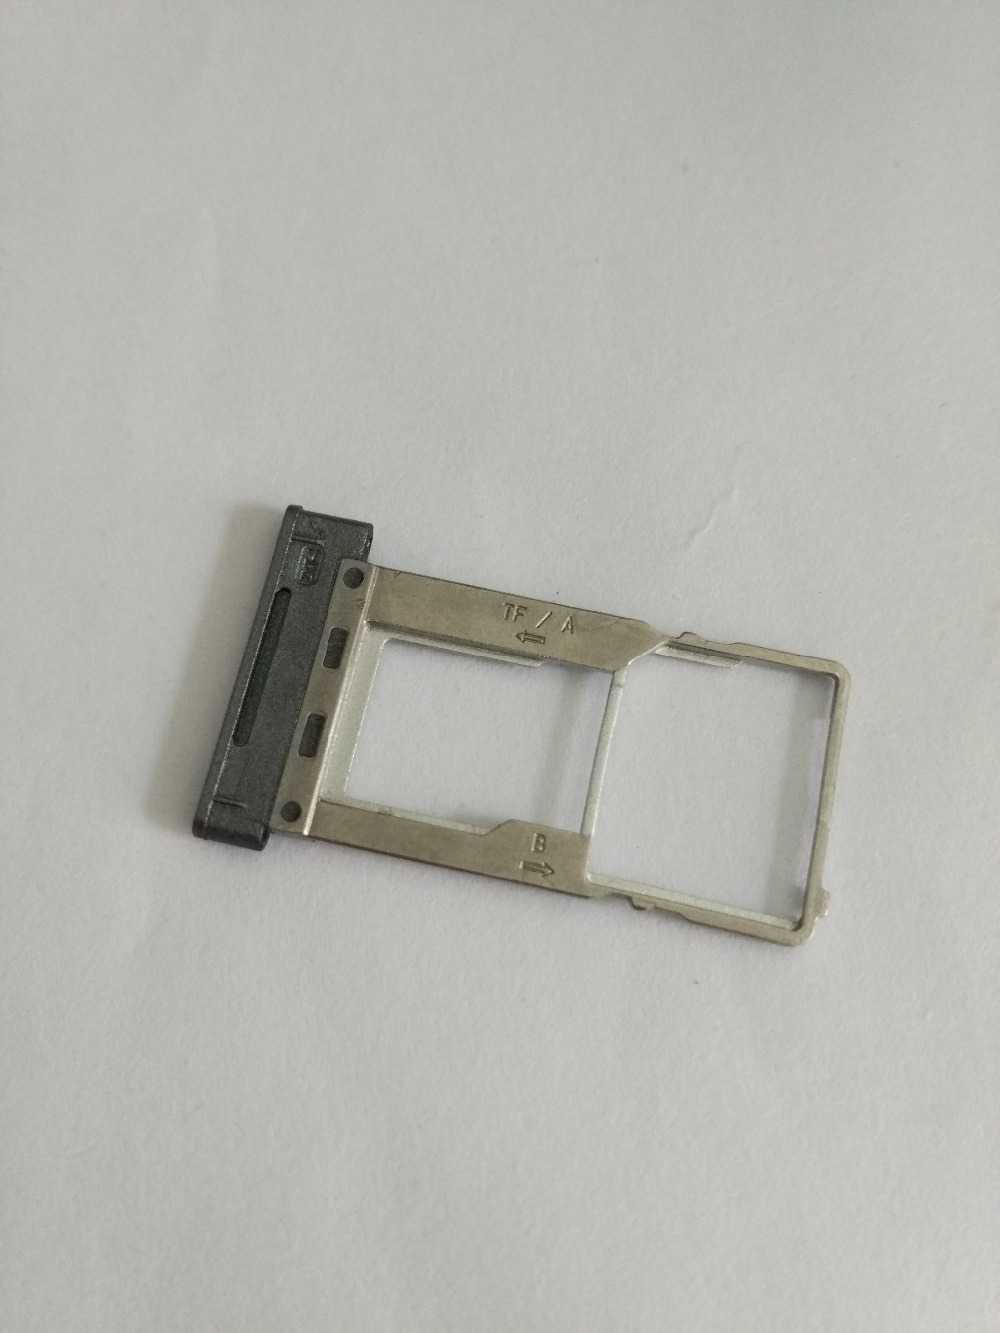 Elephone M1 SIM Tray Sim Card Holder Slot 99%New+100% original Replacement Parts for Elephone M1 phone Free shipping +Tracking(China (Mainland))